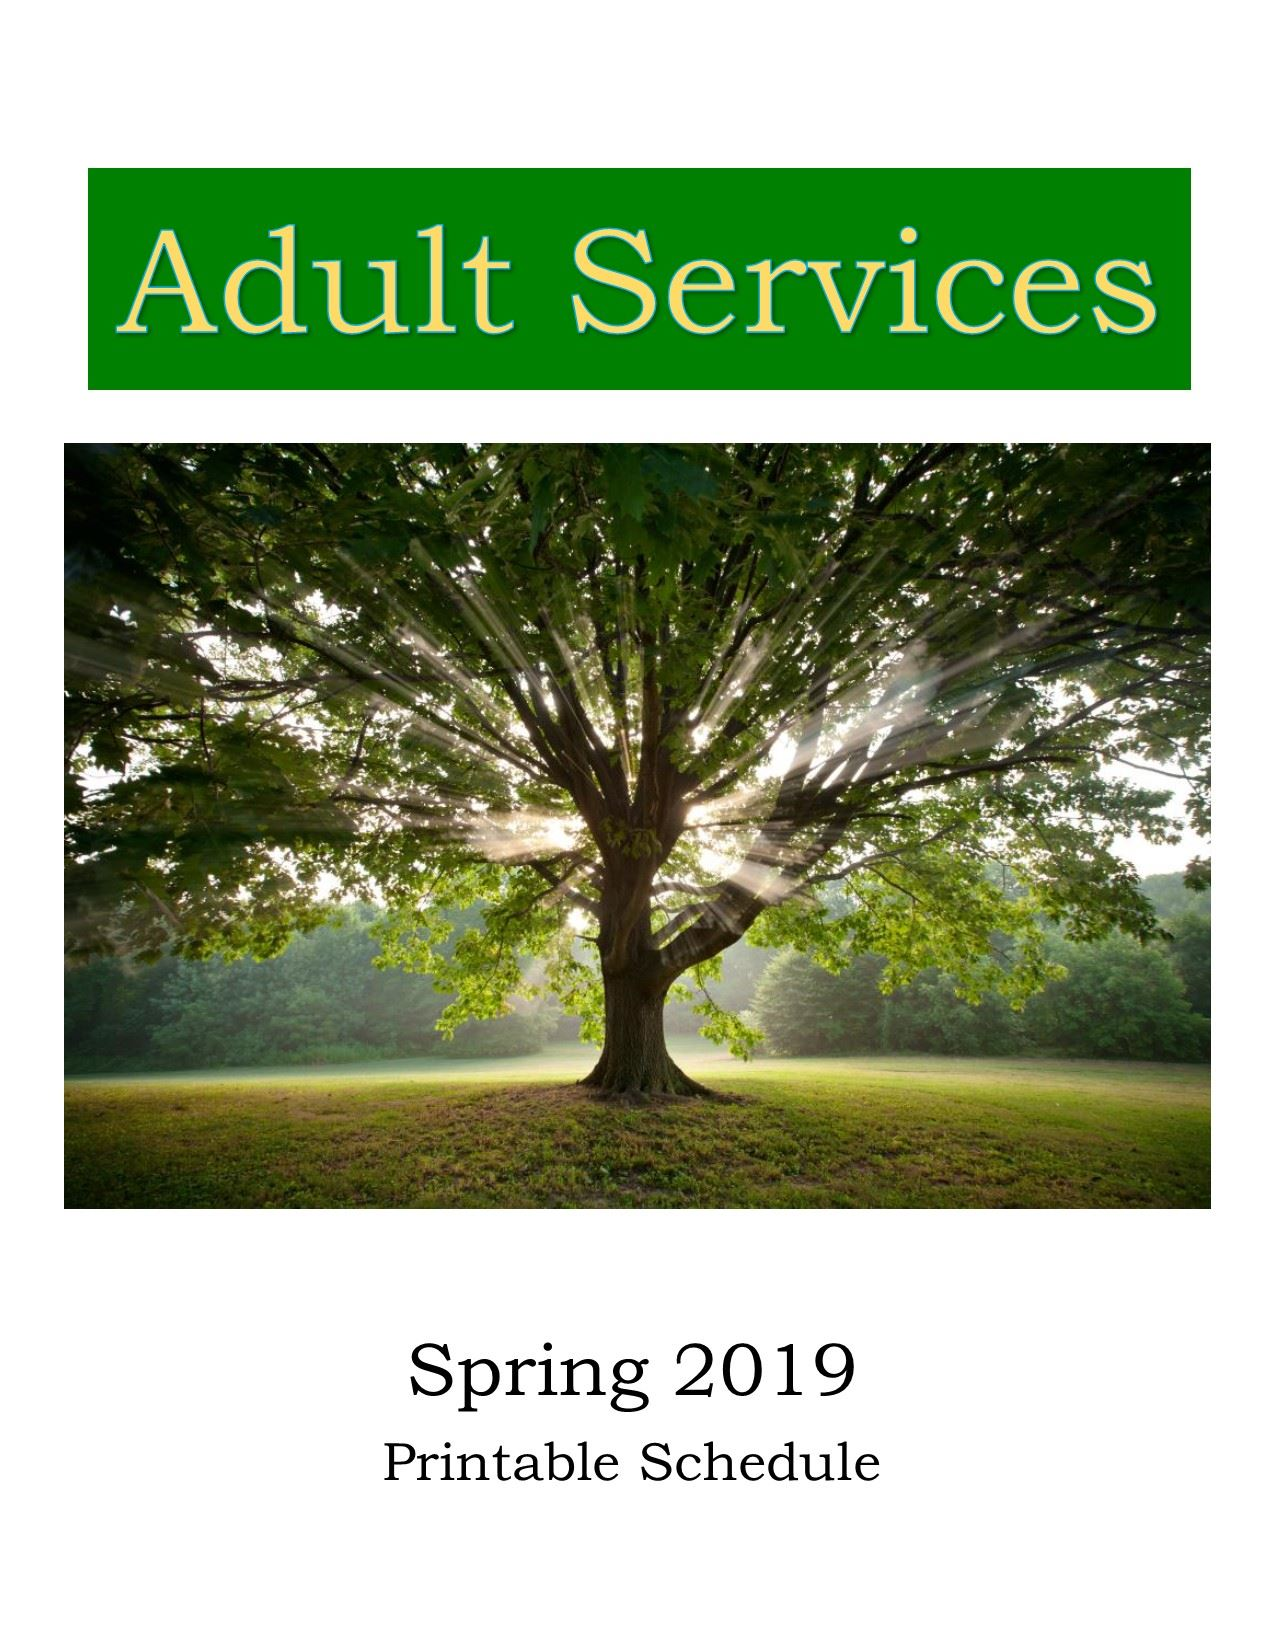 Click for printable Adult Service schedule